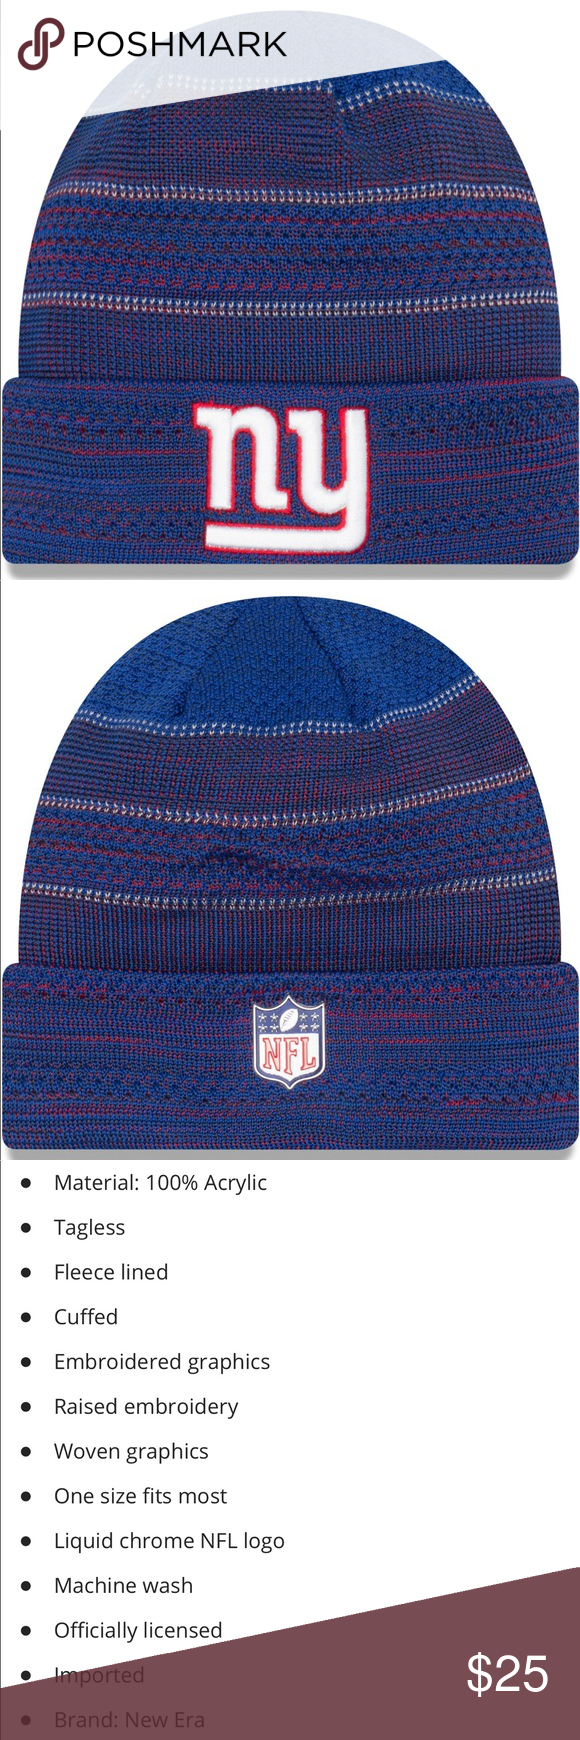 4959d695f27 NFL NY Giants New Era knit hat NY Giants New Era sideline official sport  knot hat See above slide for details and description Brand new with tags  New Era ...